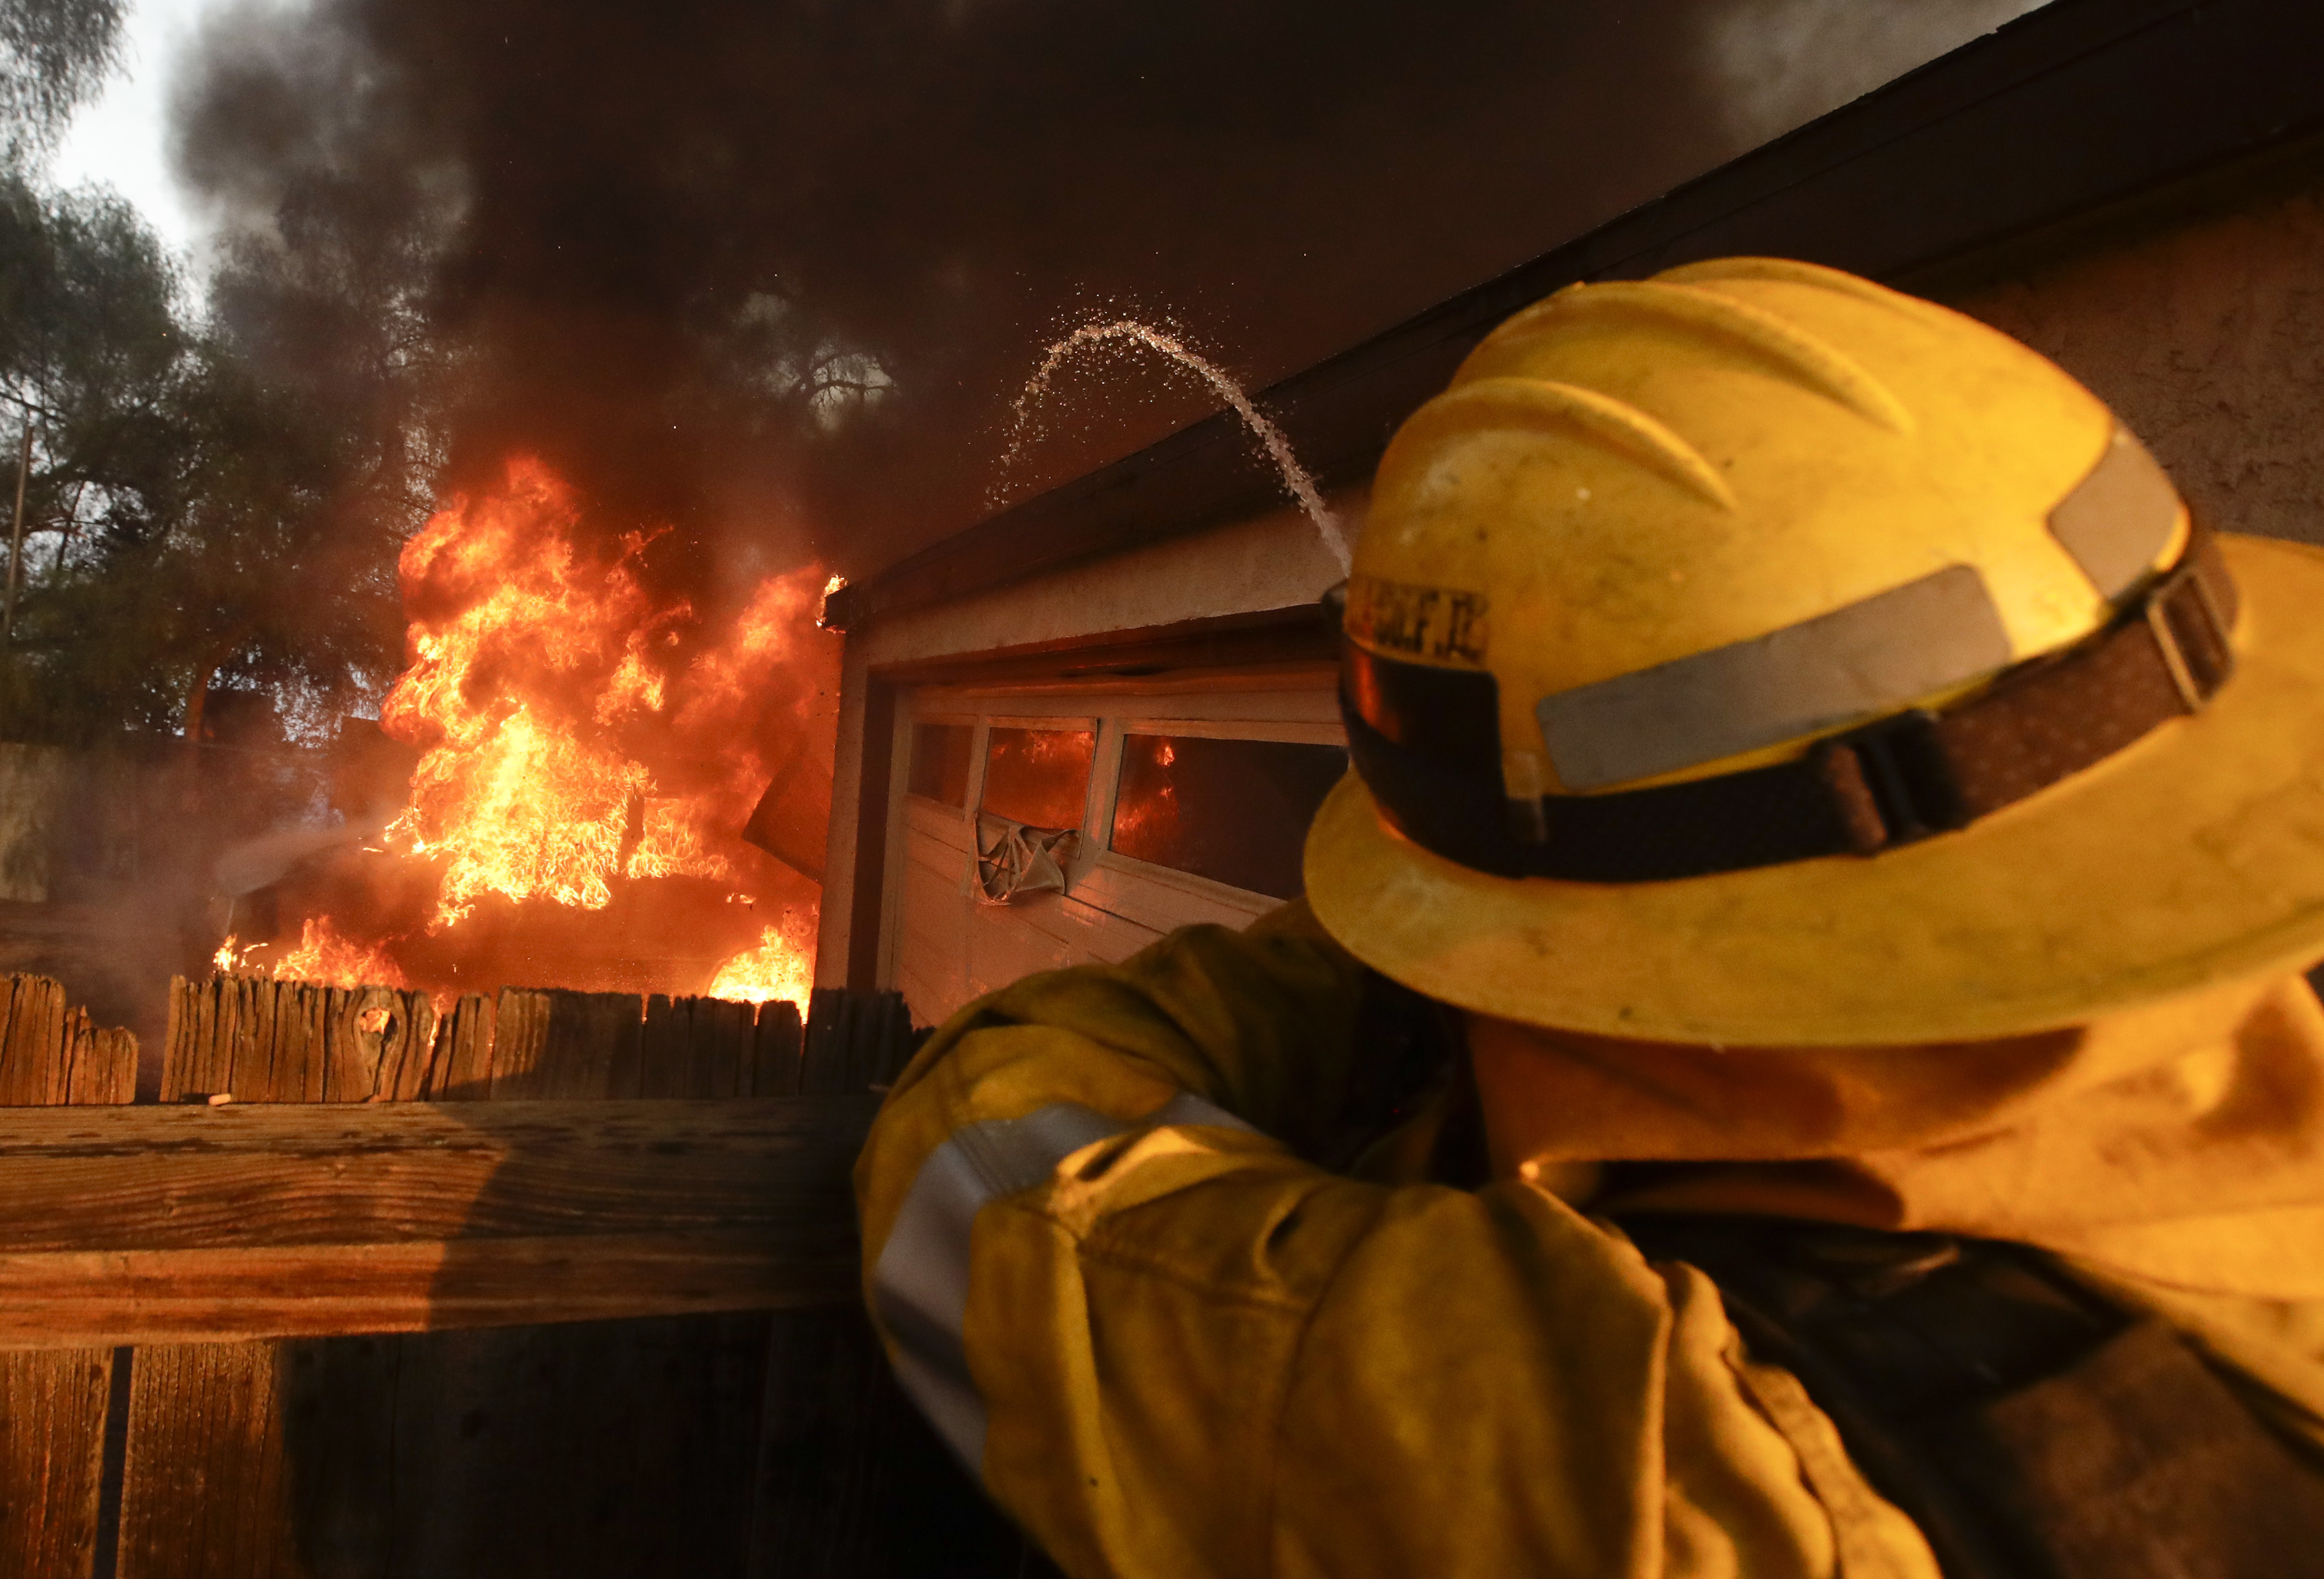 A Los Angeles County firefighter puts water a burning house in a wildfire in the Lake View Terrace area of Los Angeles Tuesday, Dec. 5, 2017. Ferocious winds in Southern California have whipped up explosive wildfires, burning a psychiatric hospital and scores of other structures. Tens of thousands of people have been ordered evacuated. (AP Photo/Chris Carlson)